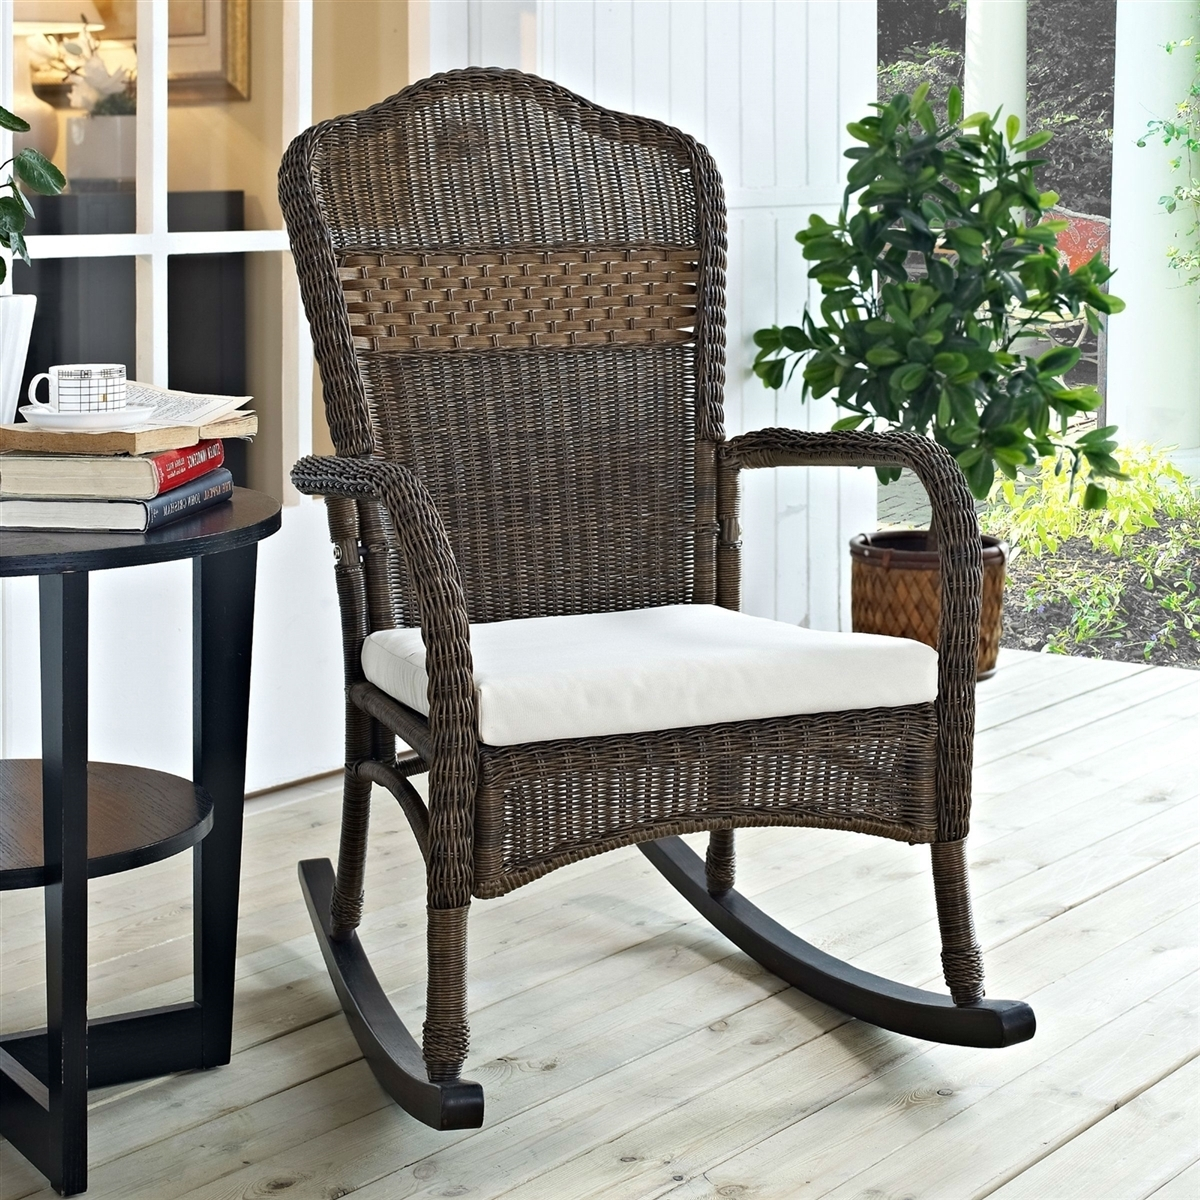 Inspiration about Wicker Patio Furniture Rocking Chair Mocha With Beige Cushion For Brown Wicker Patio Rocking Chairs (#5 of 15)